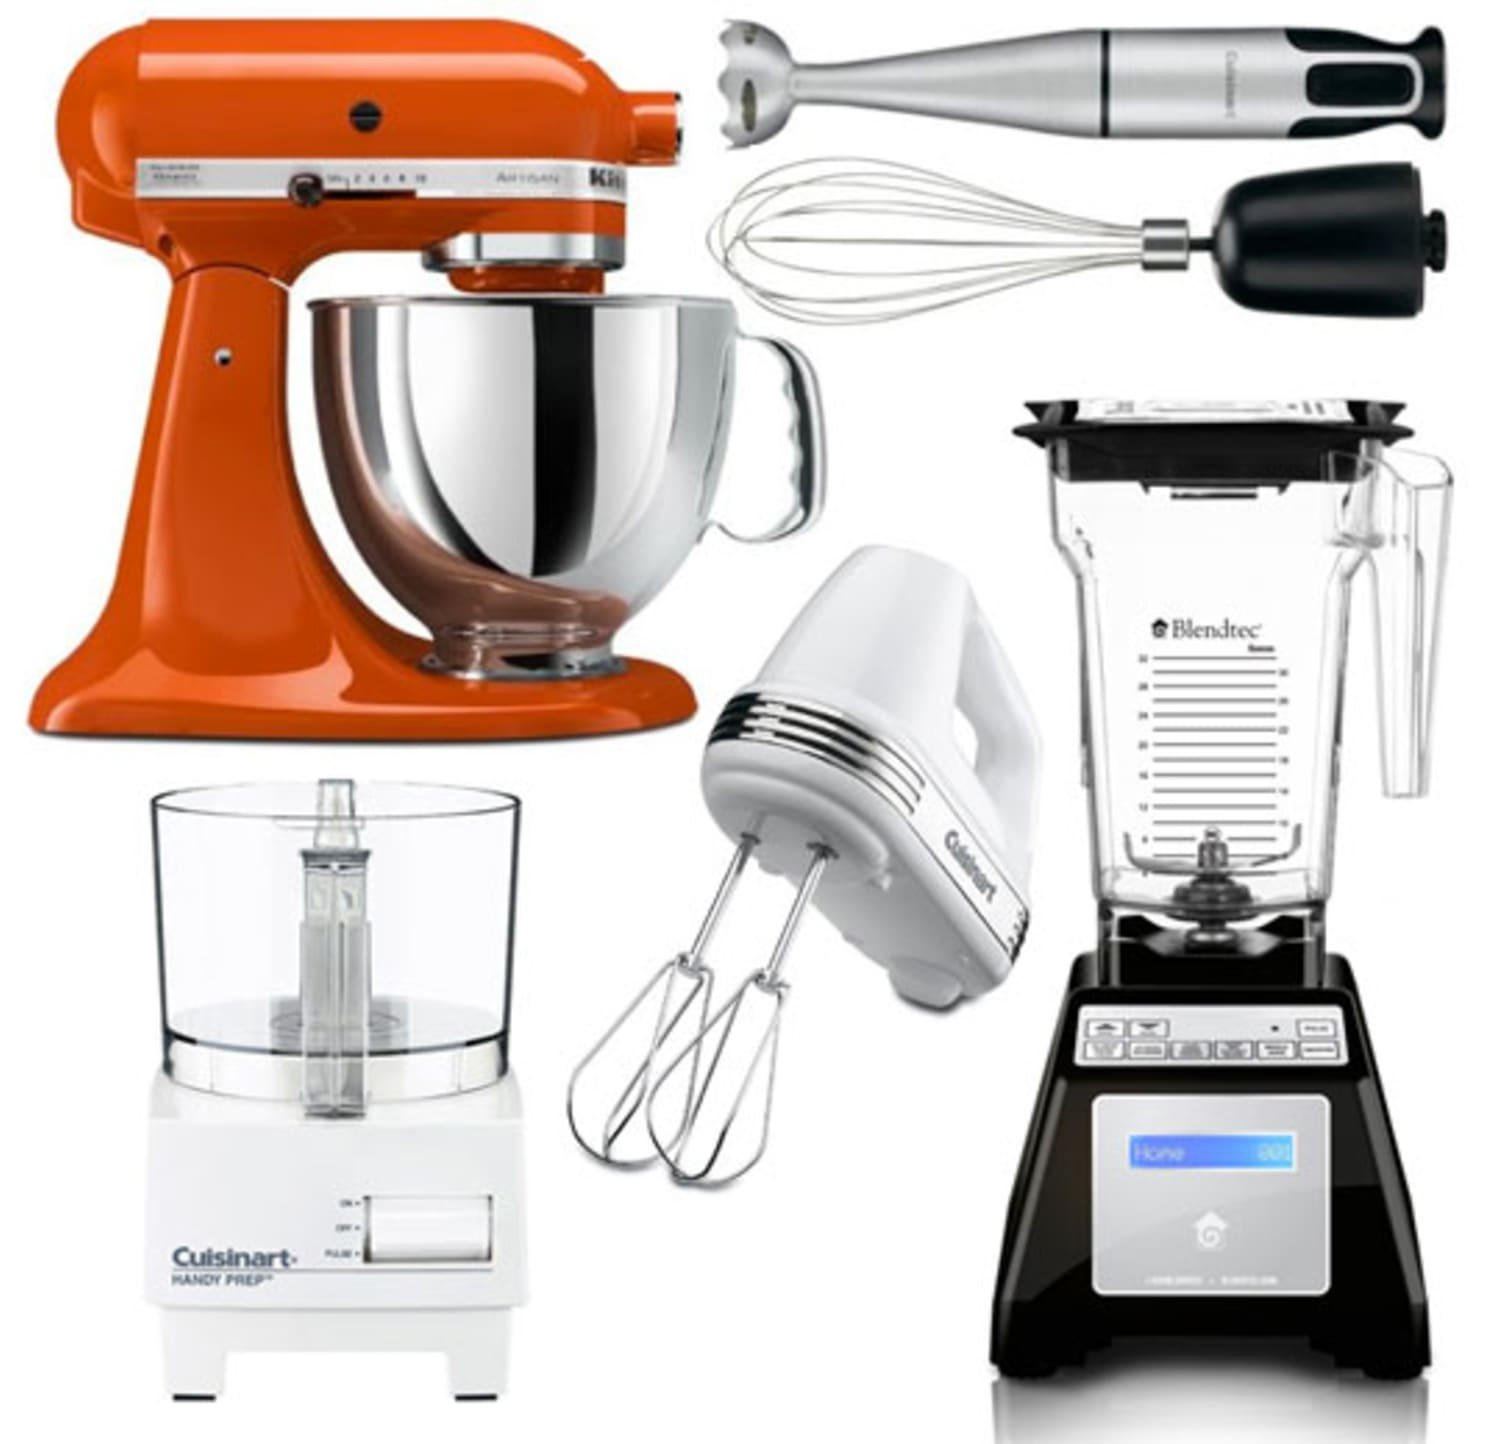 Small Electric Kitchen Appliance  The Kitchn's Guide to Essential Small Electric Appliances